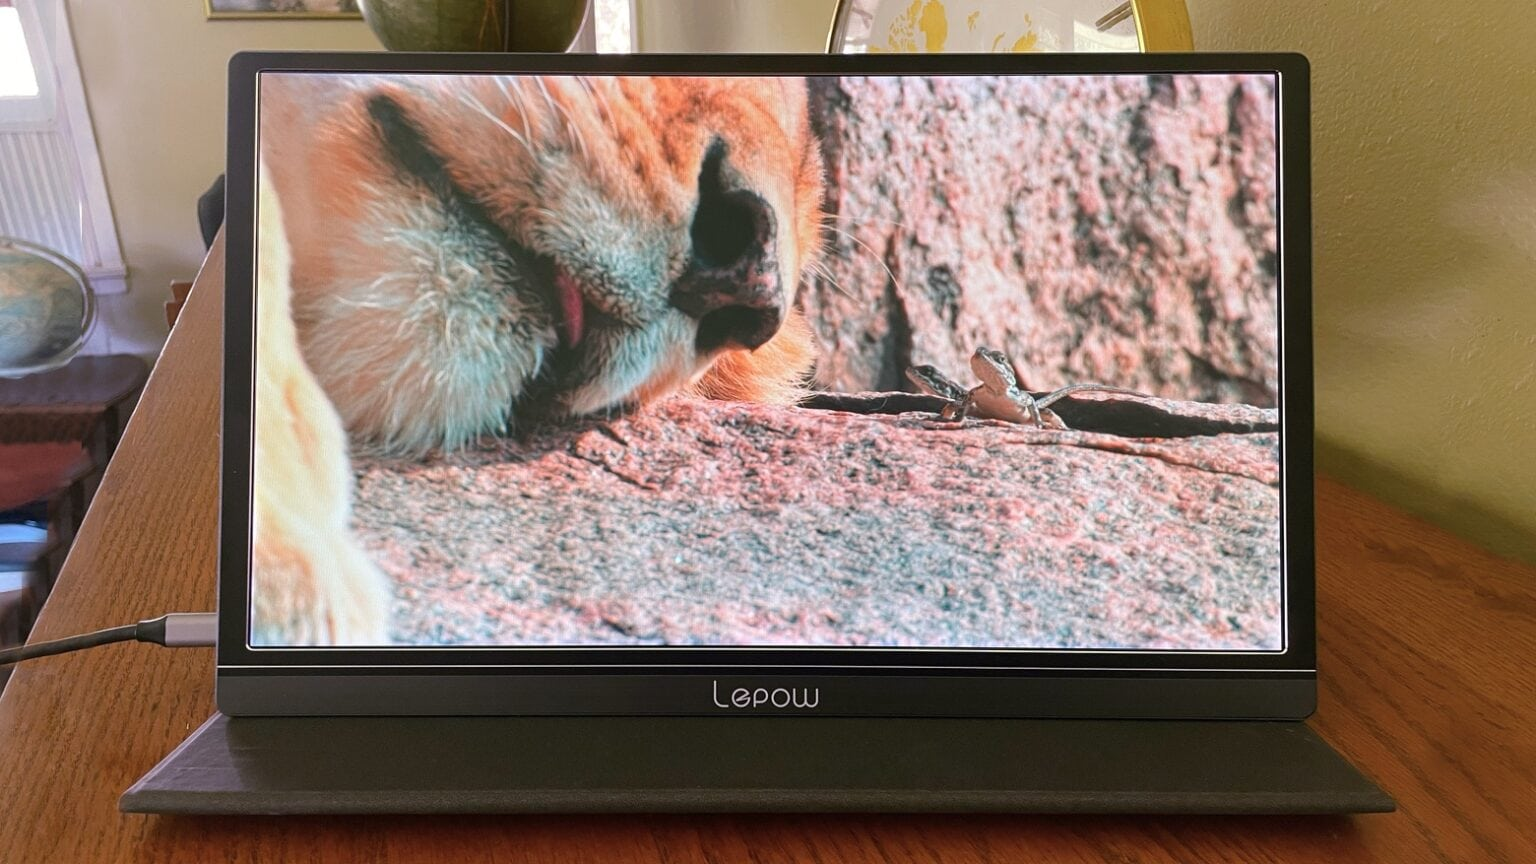 Lepow Z1-Gamut review: Portable, affordable display